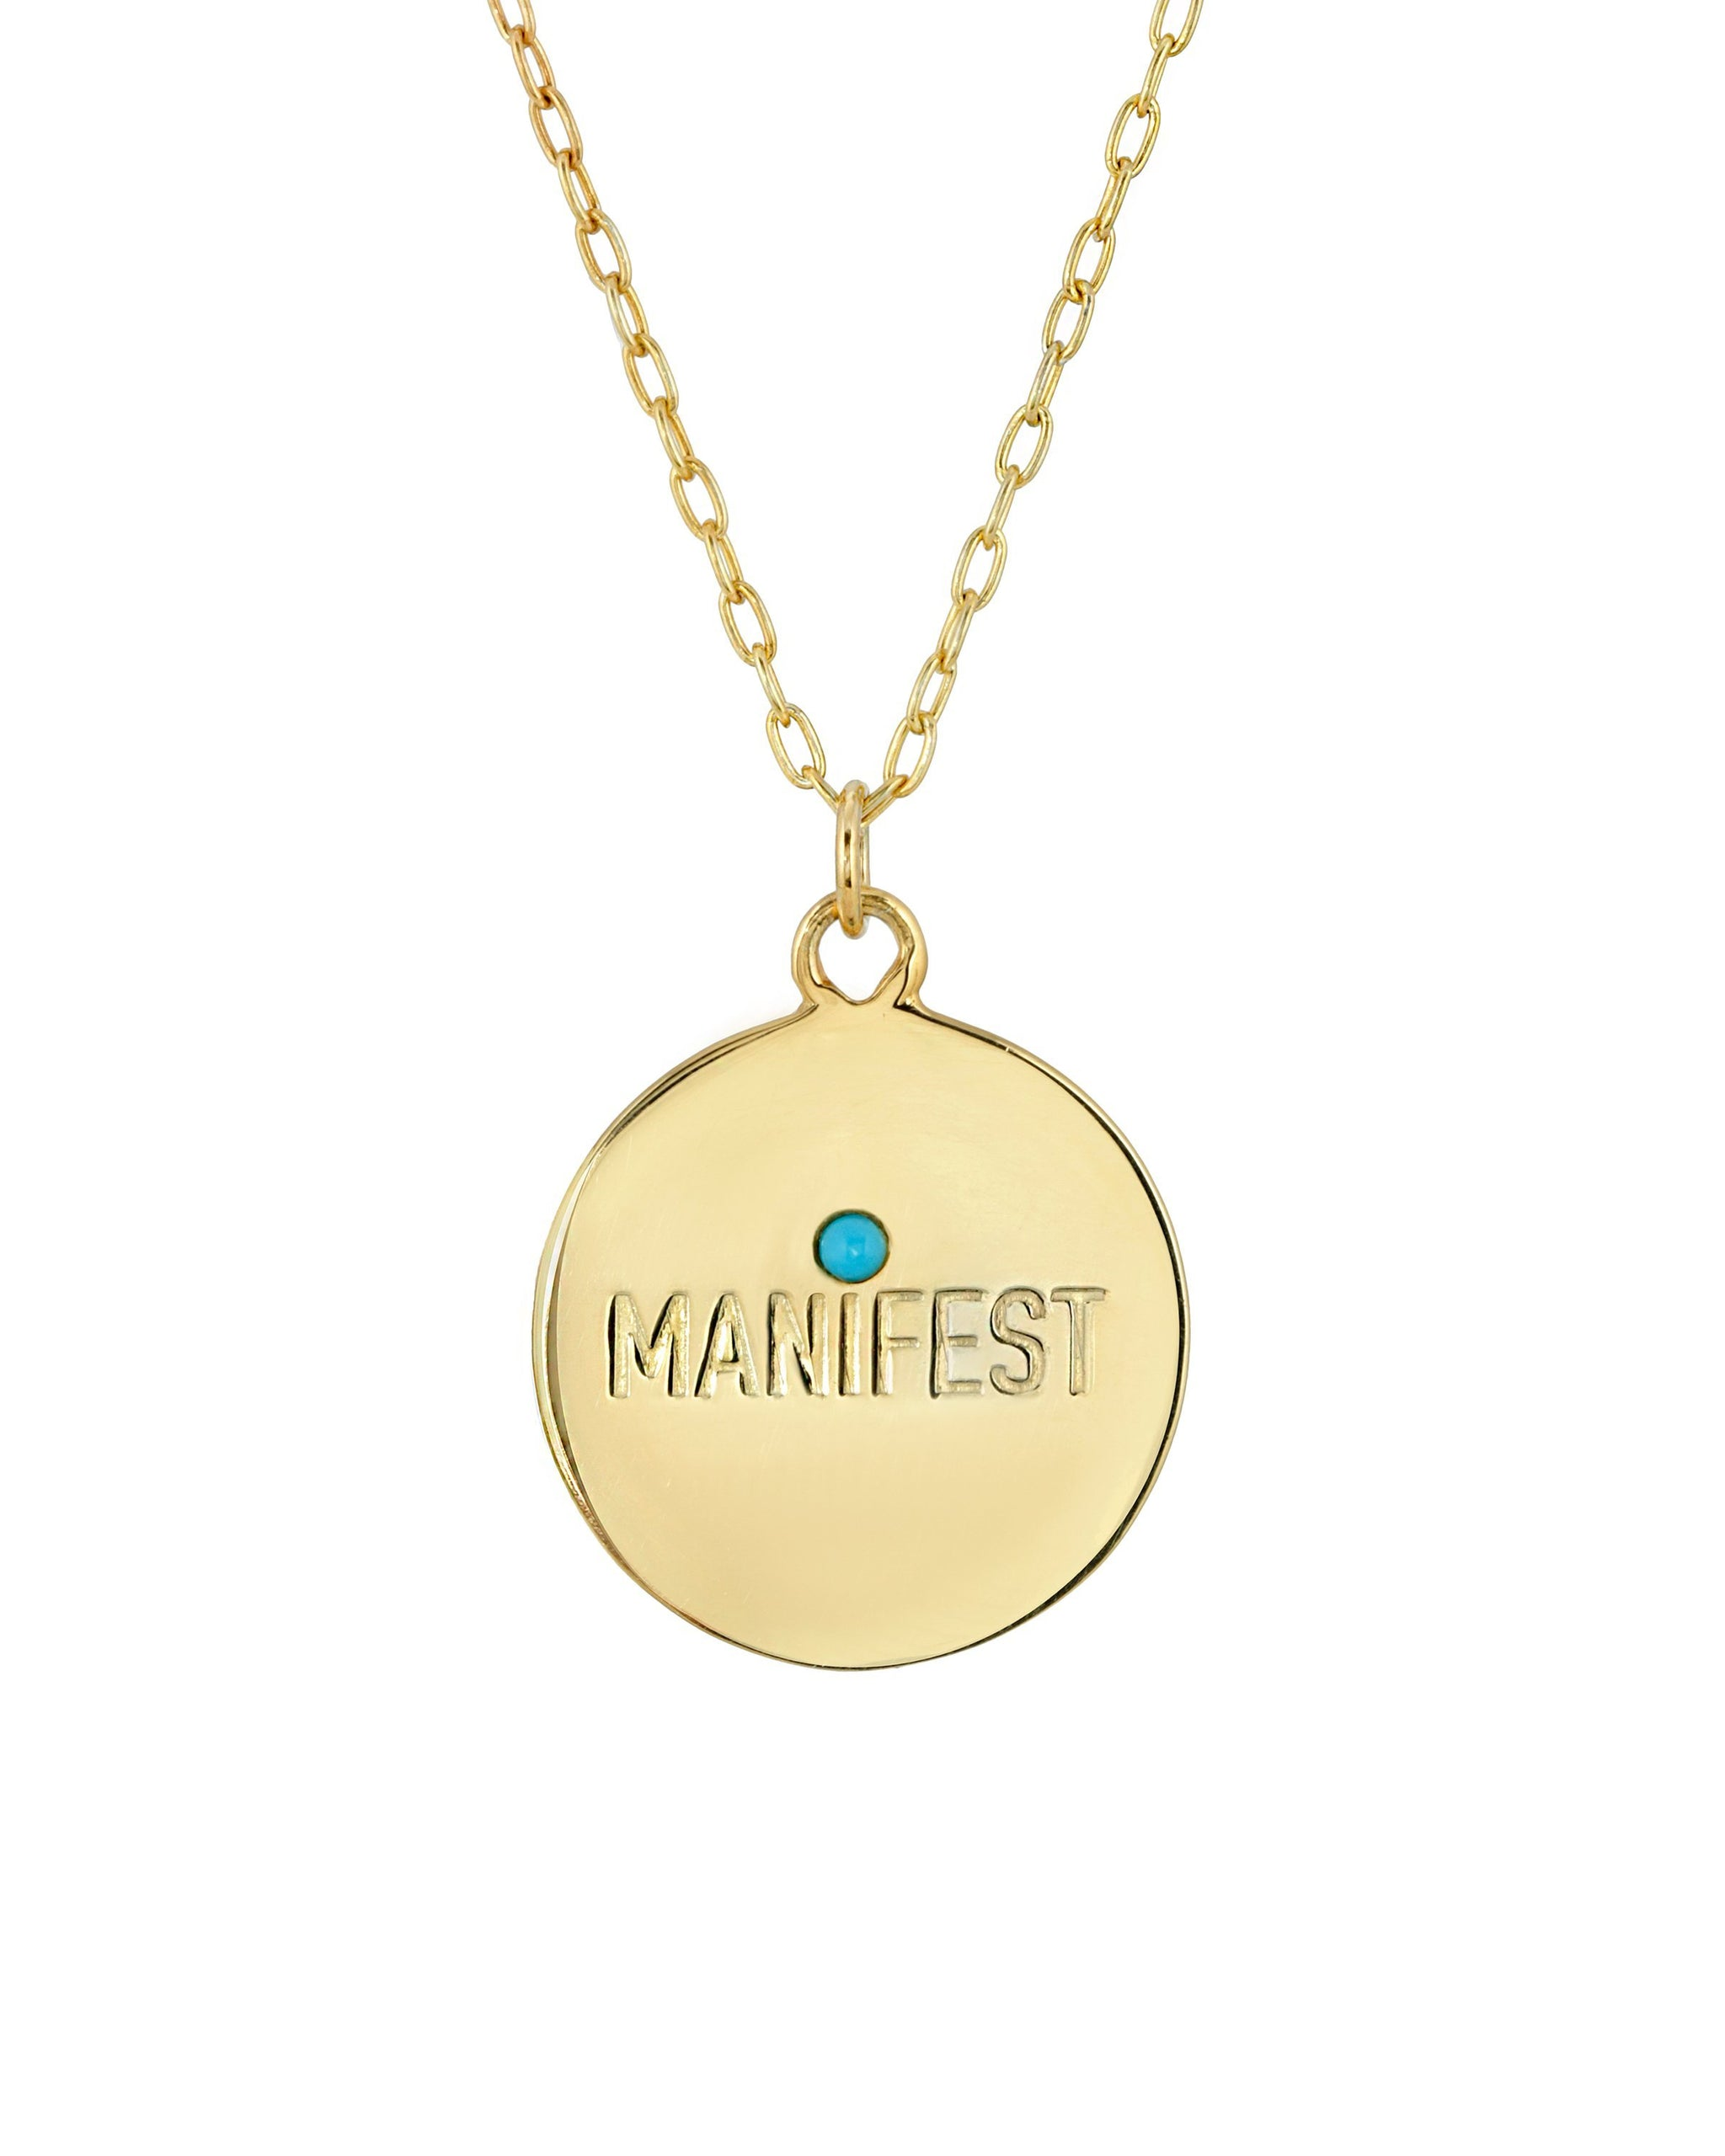 Manifest Necklace, Gold Vermeil Round Medallion with Manifest engraved and a 2mm semi precious stone. Handmade by Turquoise + Tobacco in Los Angeles, California